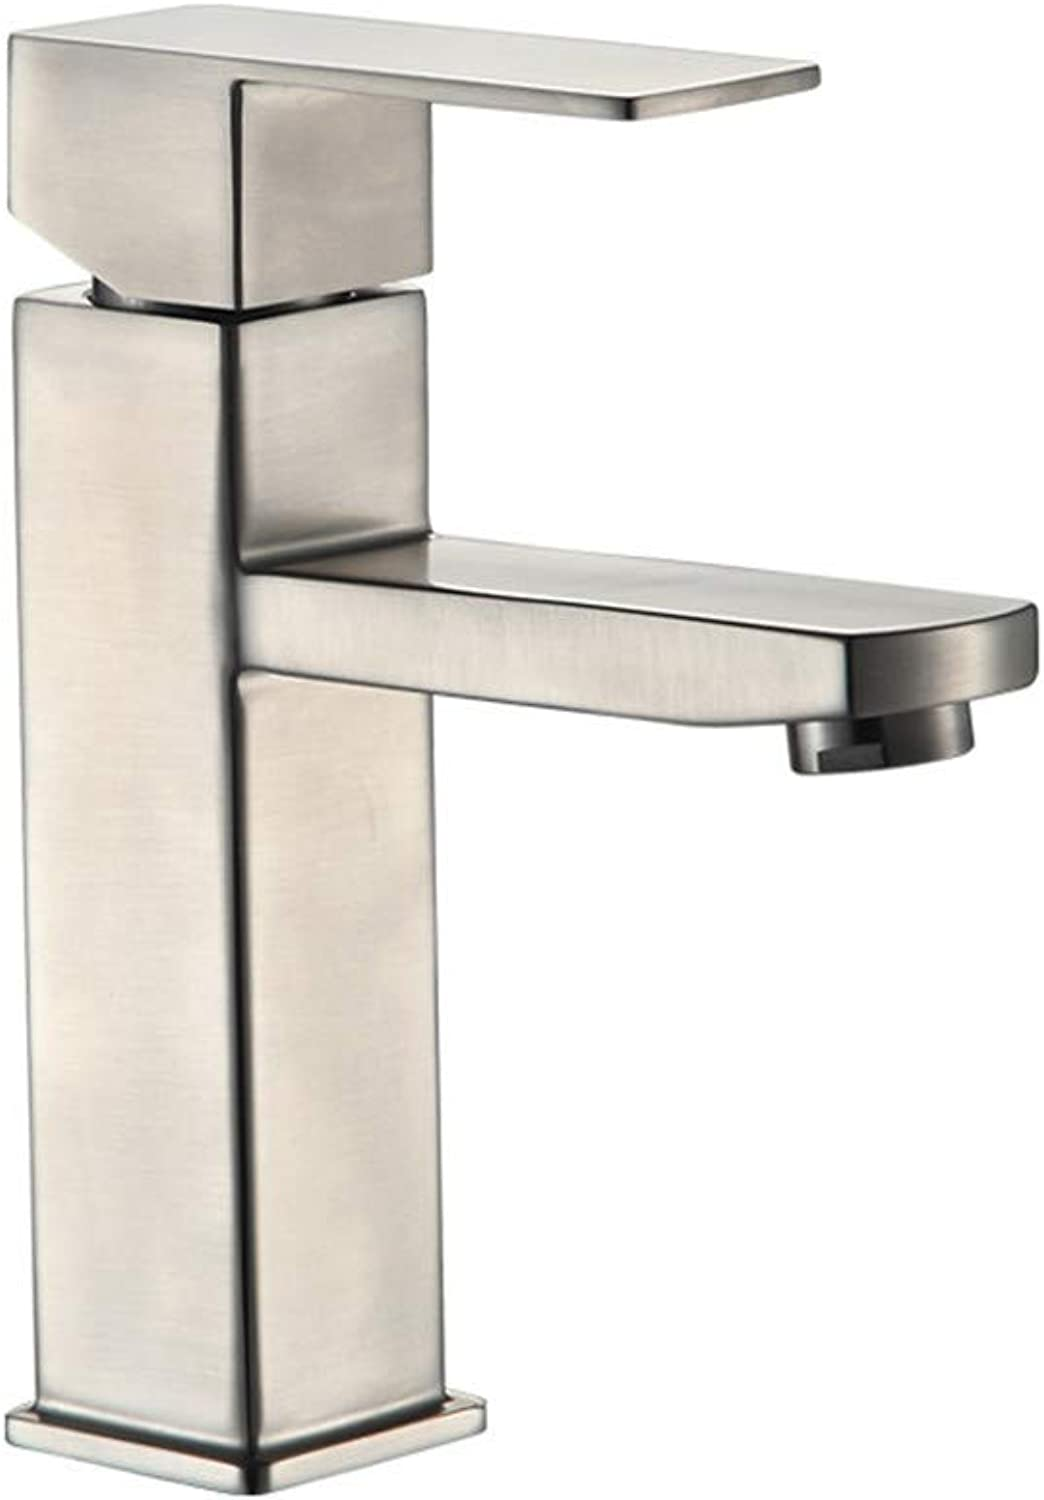 Bathroom accessories, easy to use and user-friendl Bathroom Faucets,Mixer Tap Single Lever Bathroom Single Hole Basin Tap Easy To Clean XIAHE